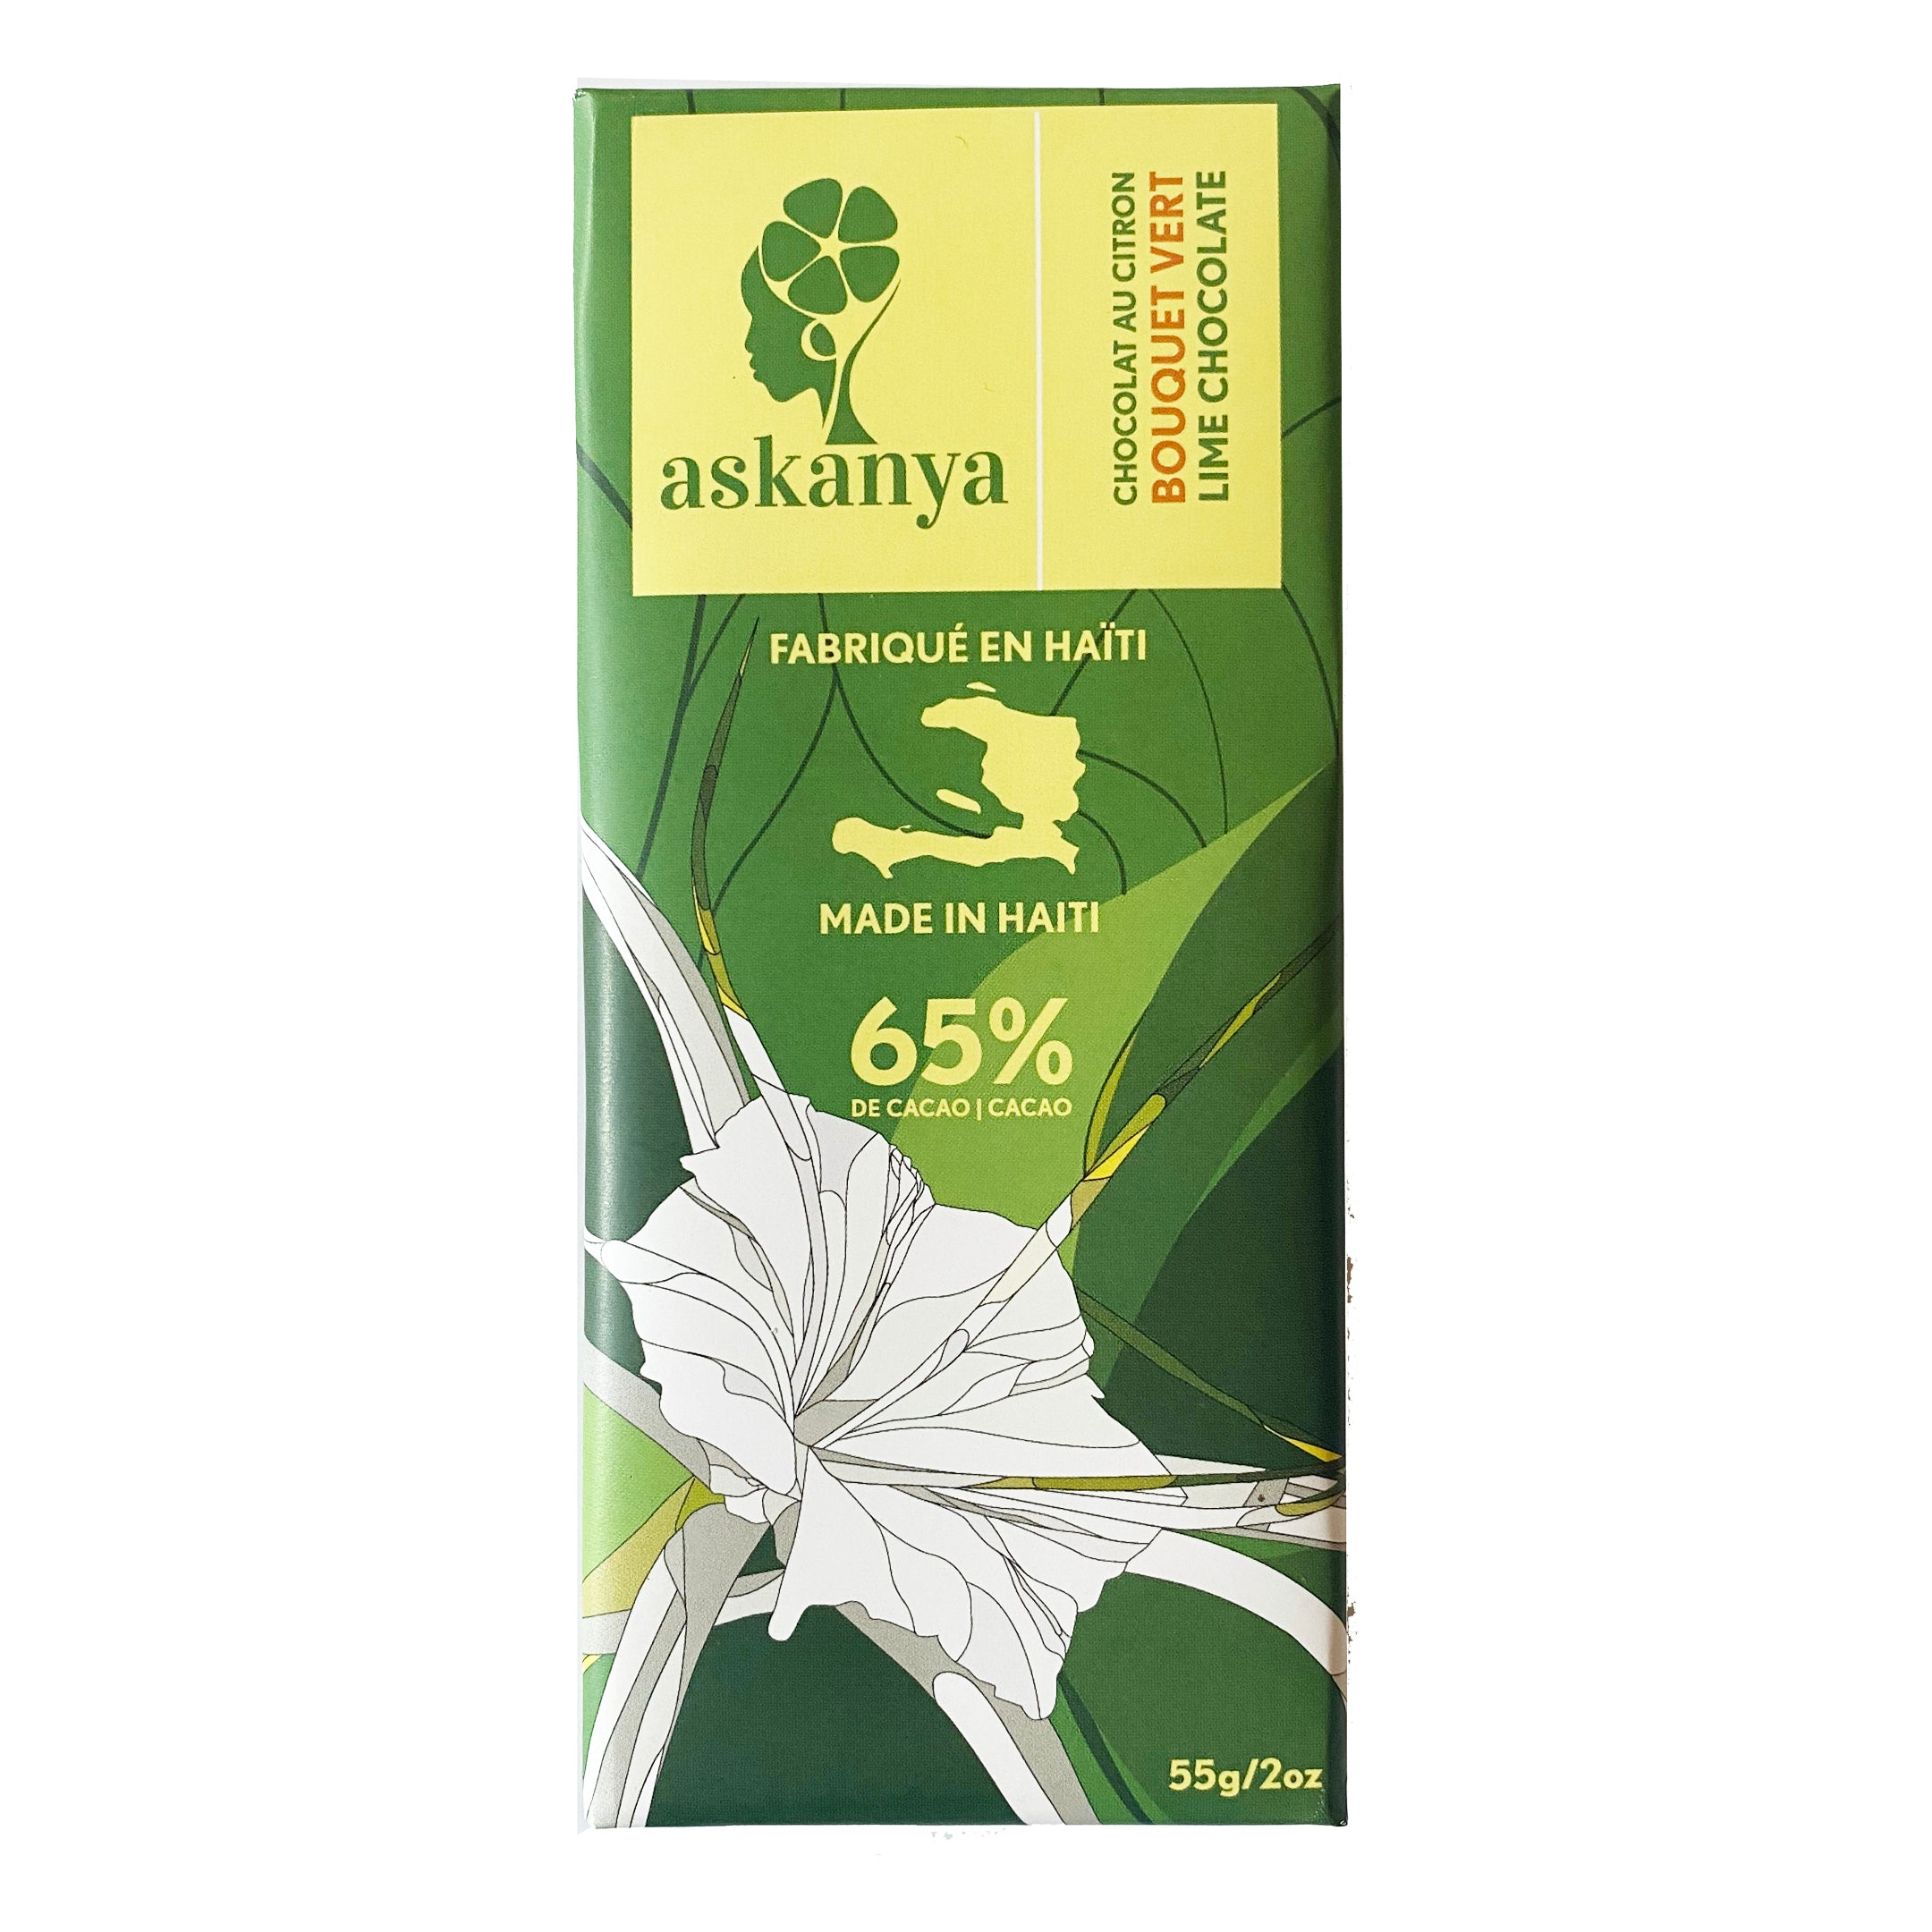 "Green packaging with white lily (Haitian flower). Sticker with company logo (Askanya) and chocolate flavor information - Lime Chocolate  called ""Bouquet Vert"". Packaging also shows Haiti country map and cacao percentage of chocolate bar: 65%. Chocolate bar is 55g or 2oz."